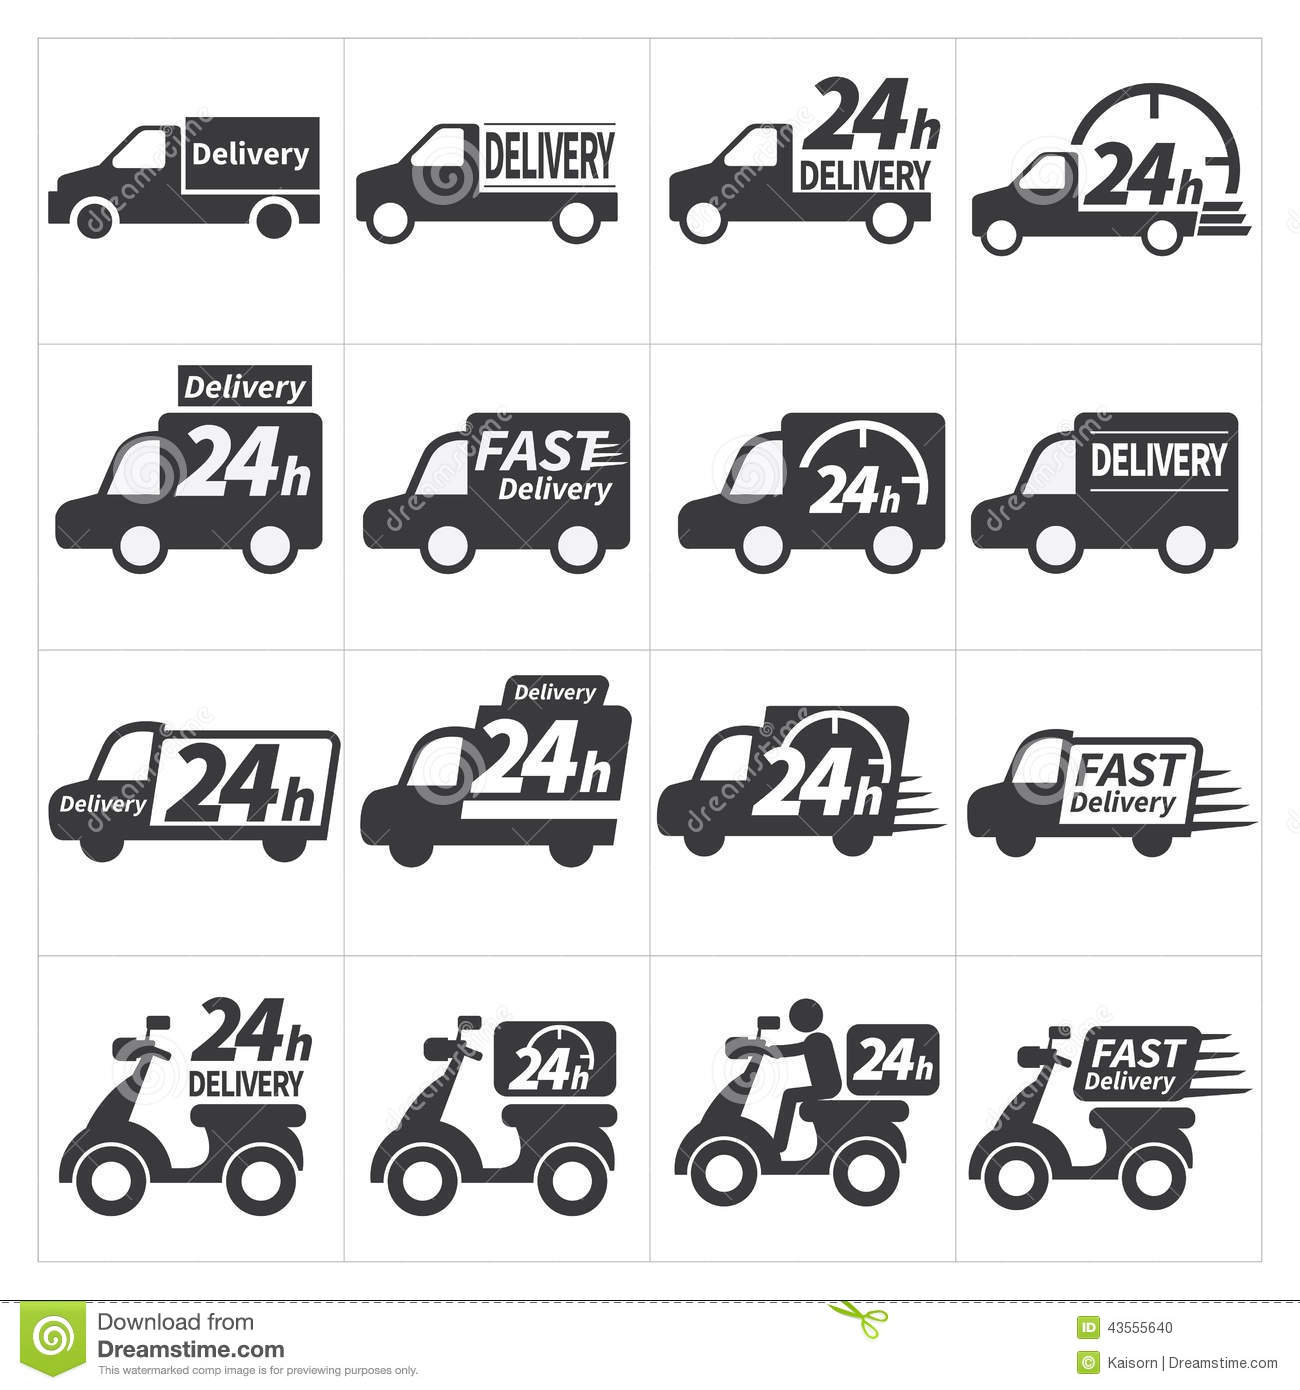 Delivery car icon stock vector. Illustration of transport - 43555640